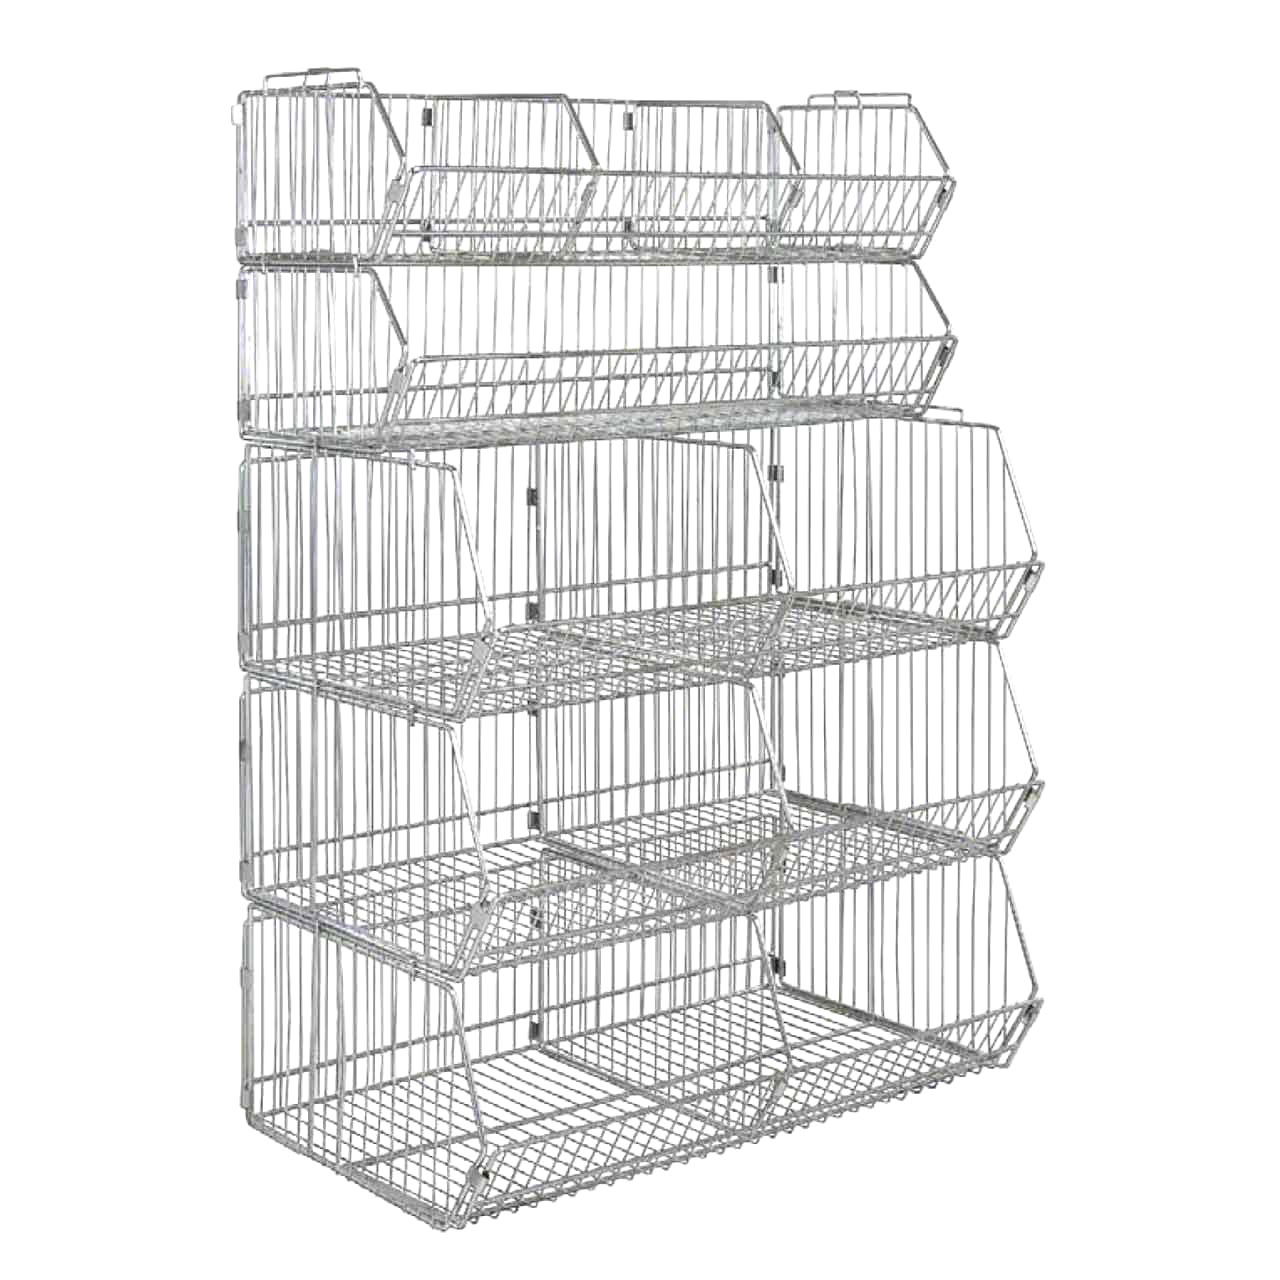 Stationary stacking wire shelving unit